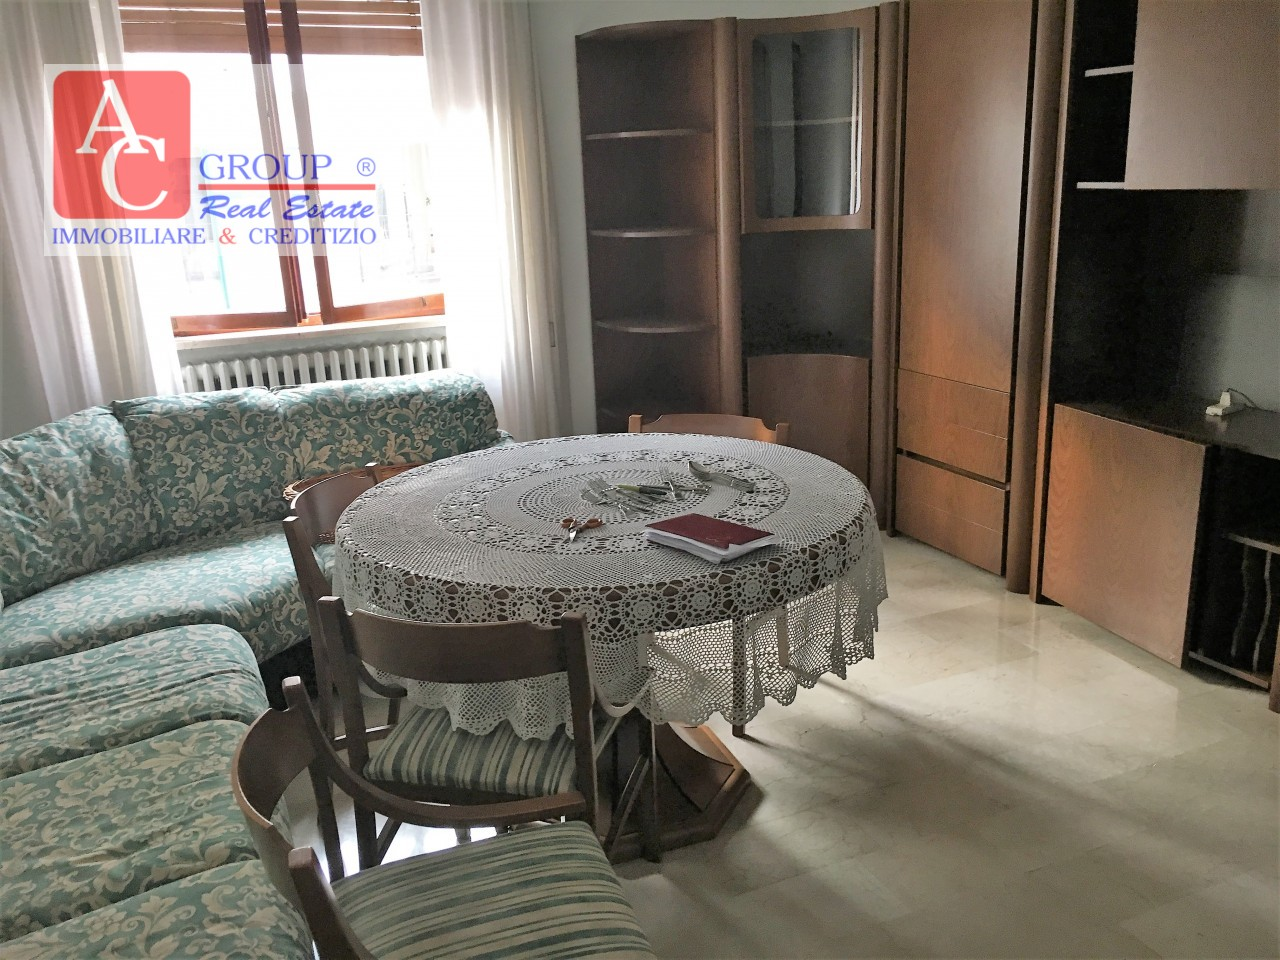 Apartment for Sale in Saronno